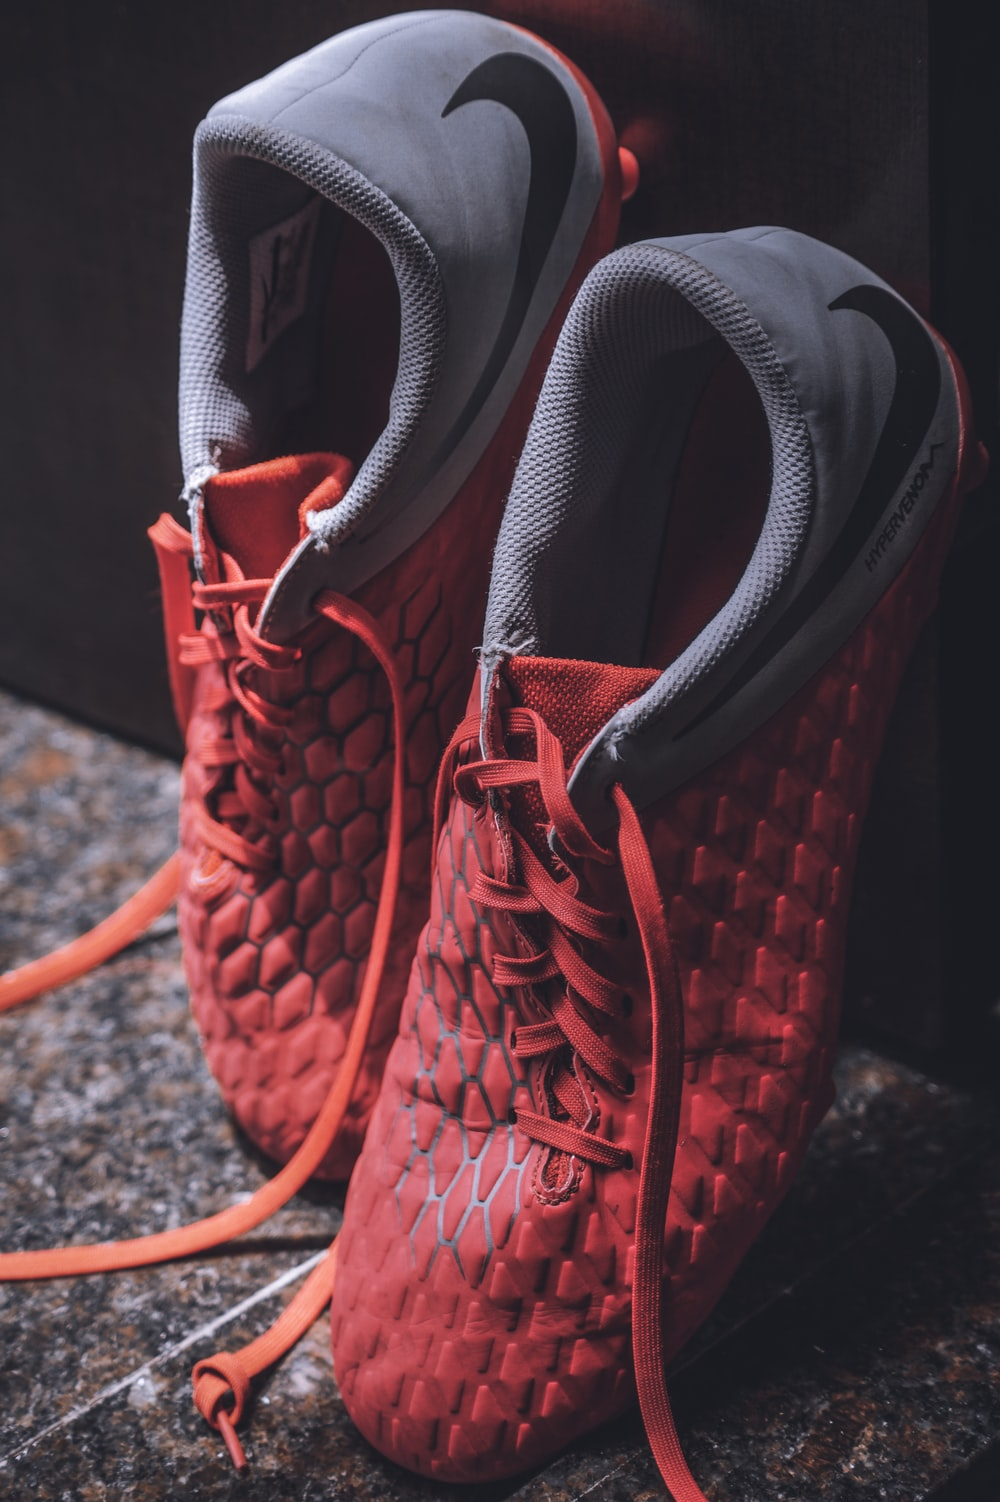 pair of grey and red shoes close-up photography